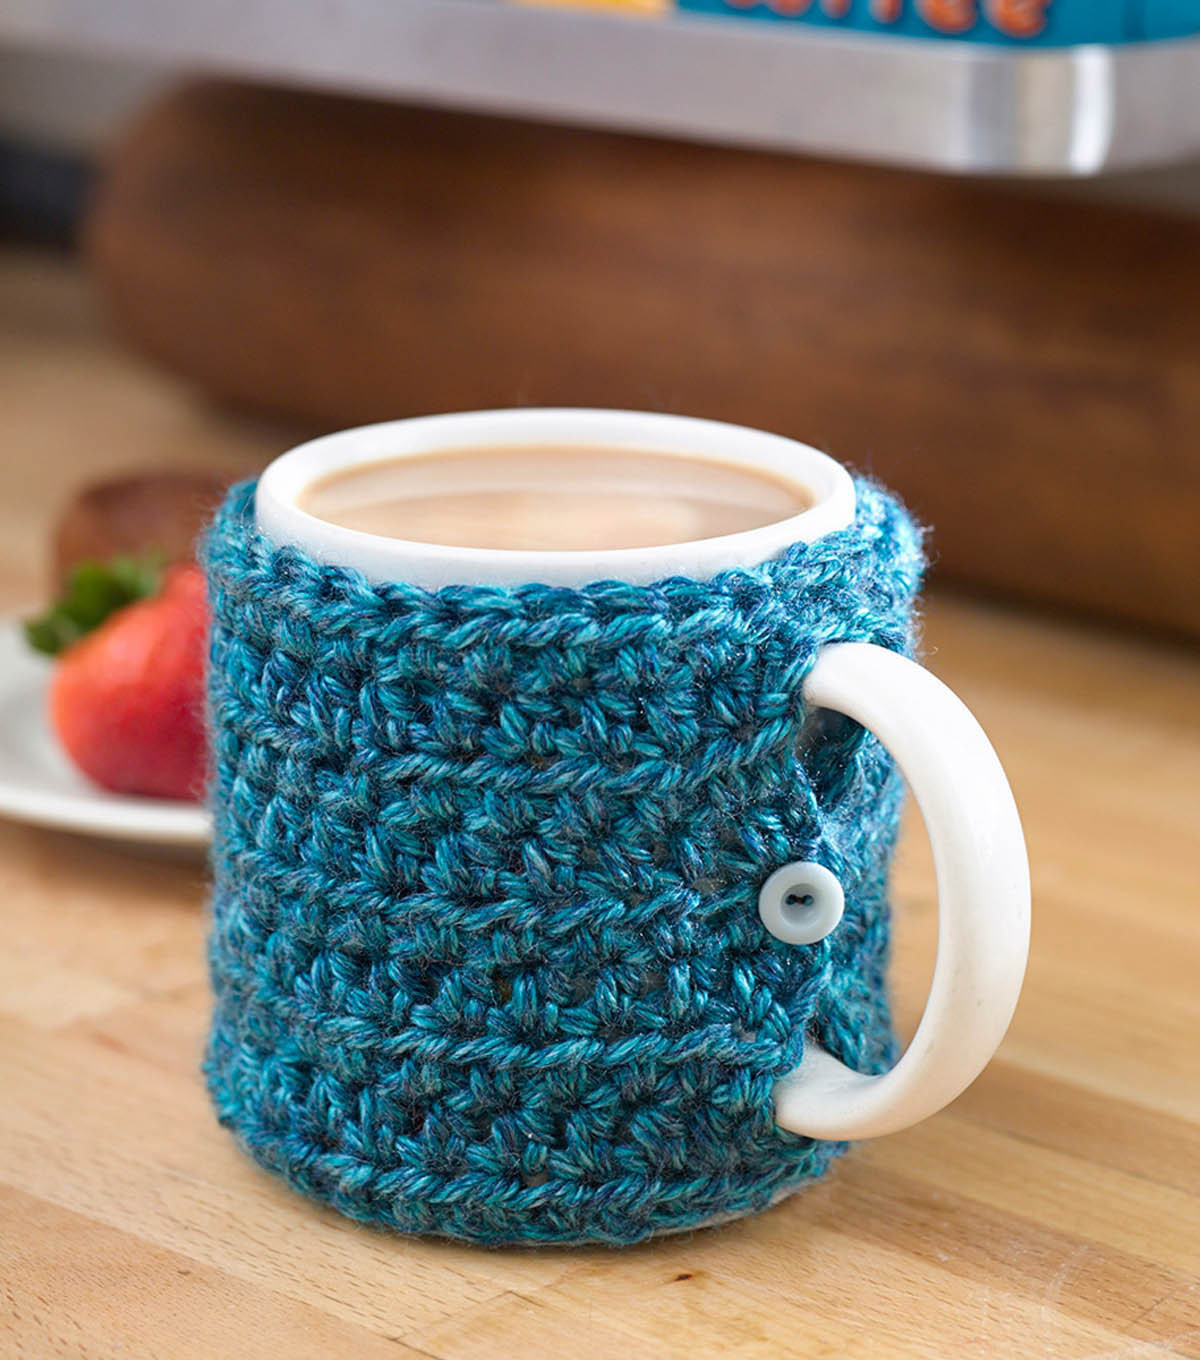 Crochet Coffee Cup Cozy Best Of Craftdrawer Crafts Free Easy to Crochet Mug Cozy Patterns Of Crochet Coffee Cup Cozy Elegant Sunny Stitching Pinned It & Did It Mug Cozy Crochet